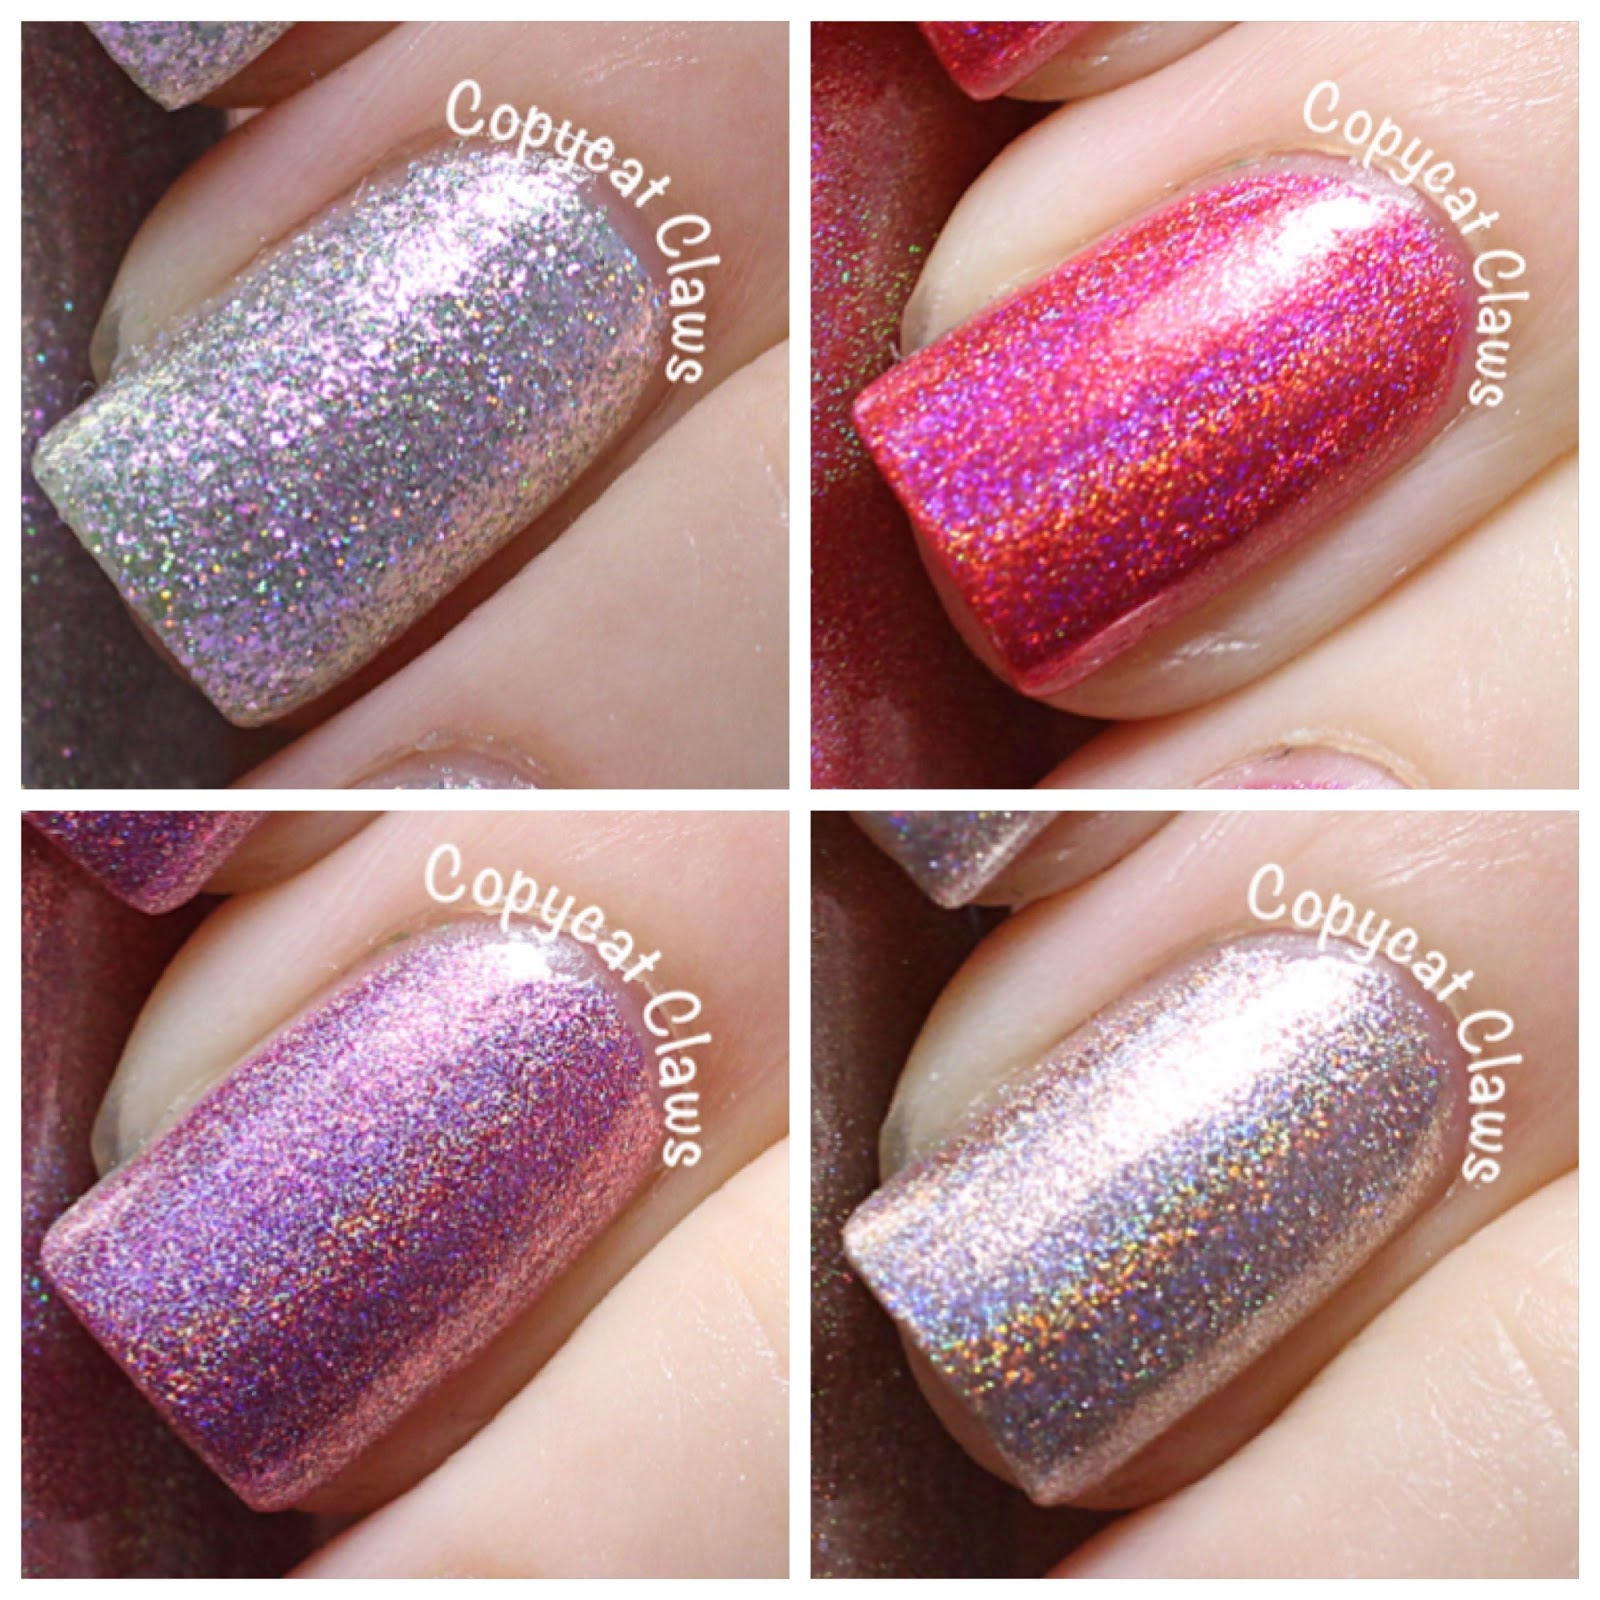 Copycat Claws: JOSS Nail Lacquer Review & Swatches